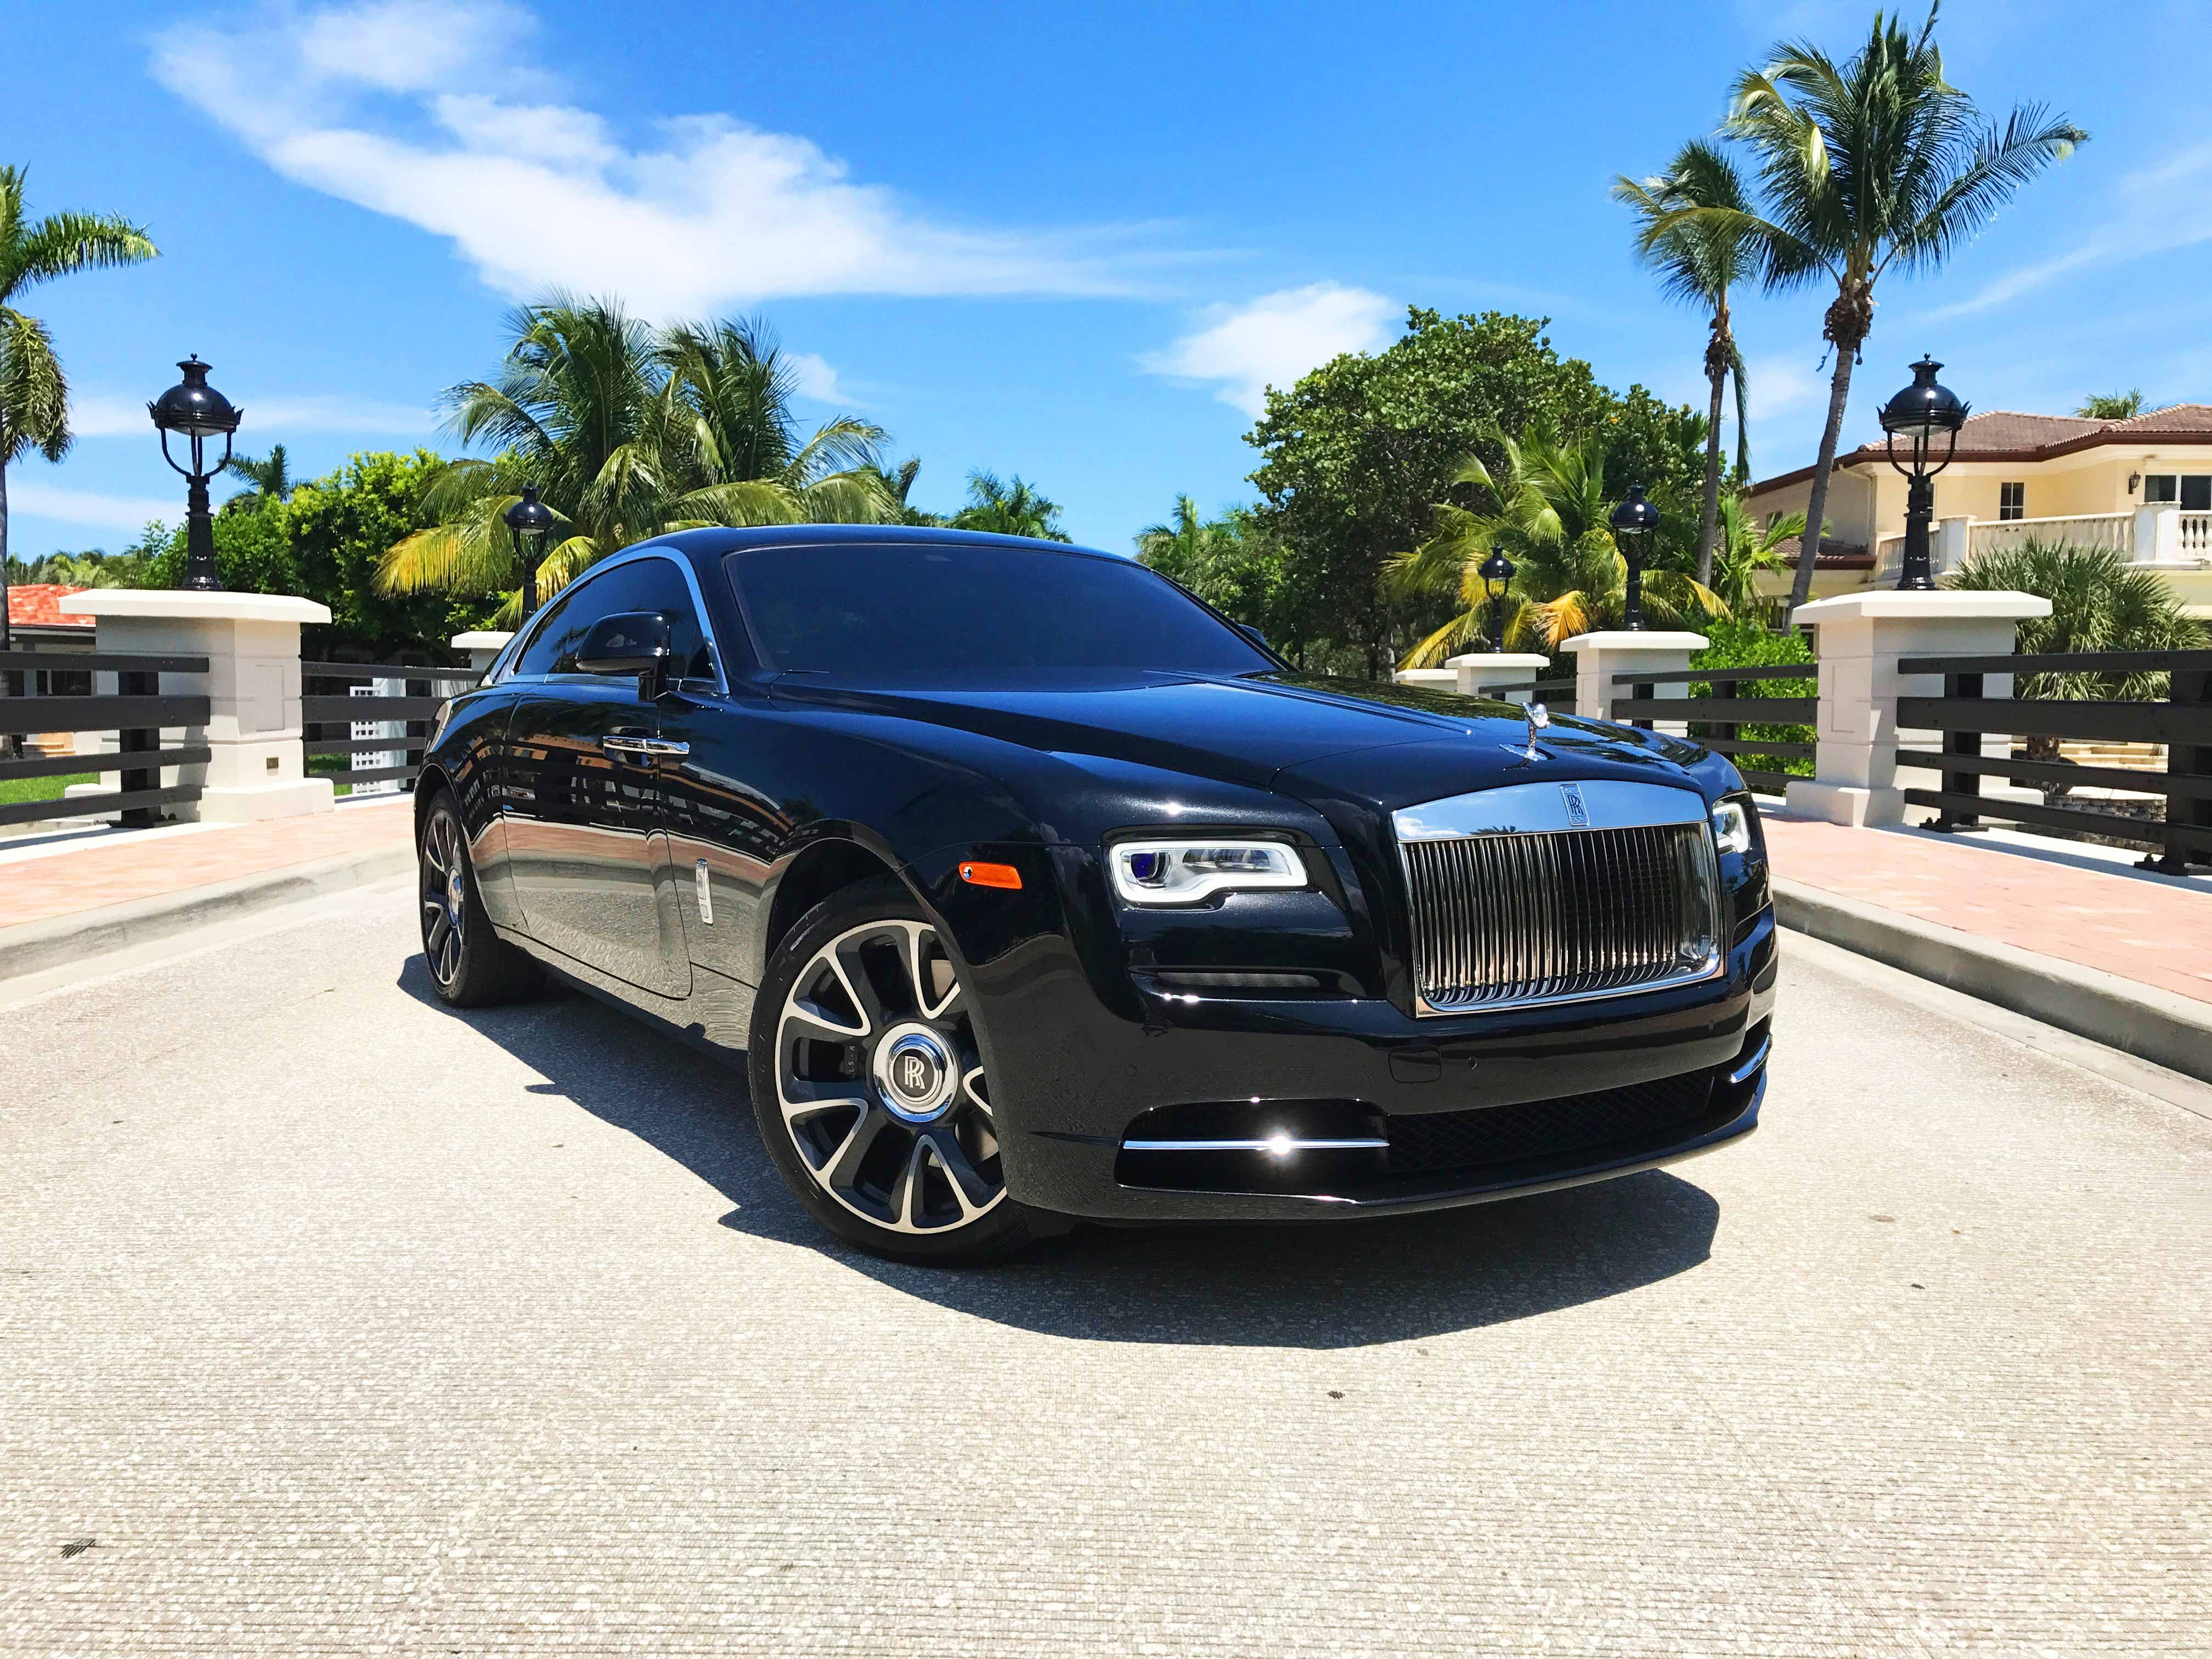 Advanced Car Rental Serves You With The World Class Vehicles To Traverse Around Uae Car Rental Best Car Rental Thrifty Car Rental